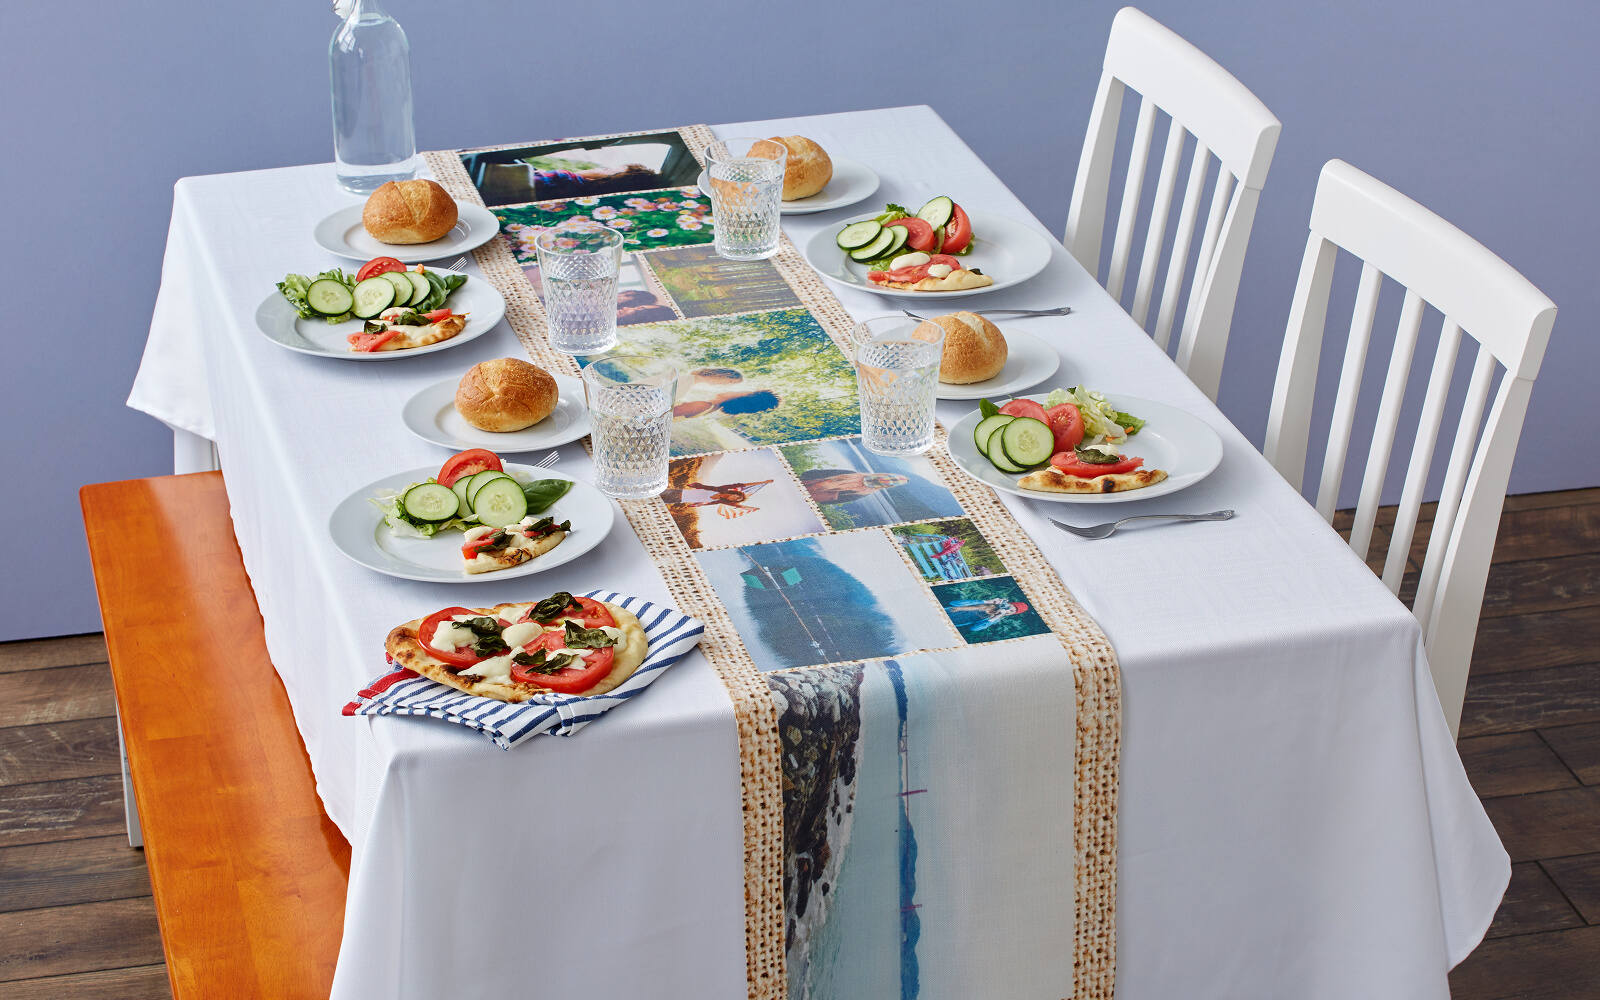 Exclusive deal for 10 foot table runner